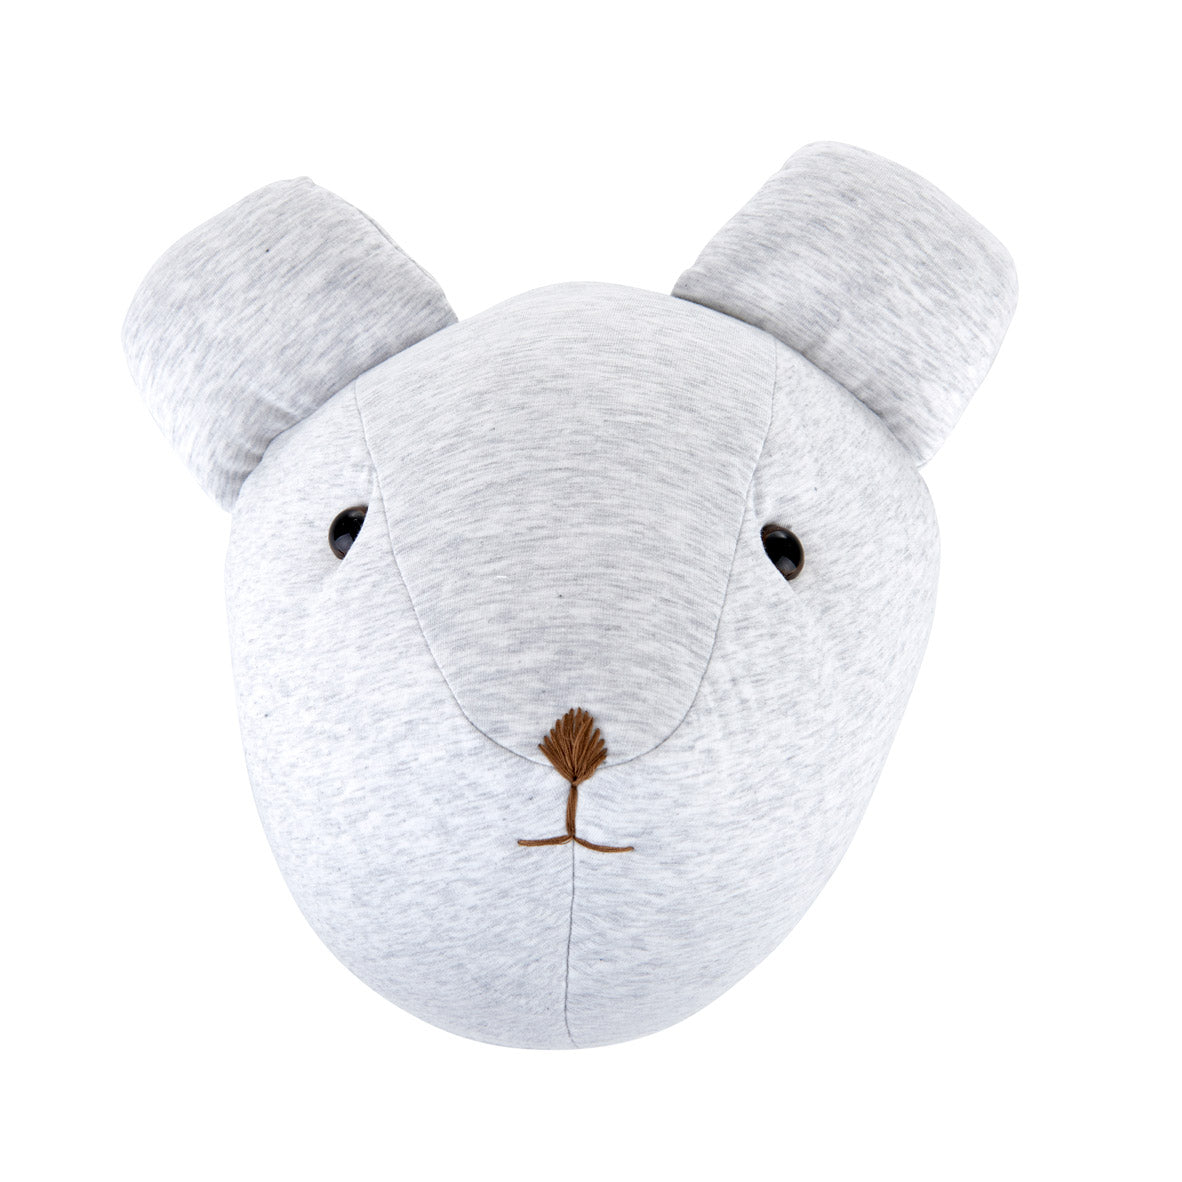 Theophile & Patachou Bear Trophy Head for Children's Room - Soft Grey